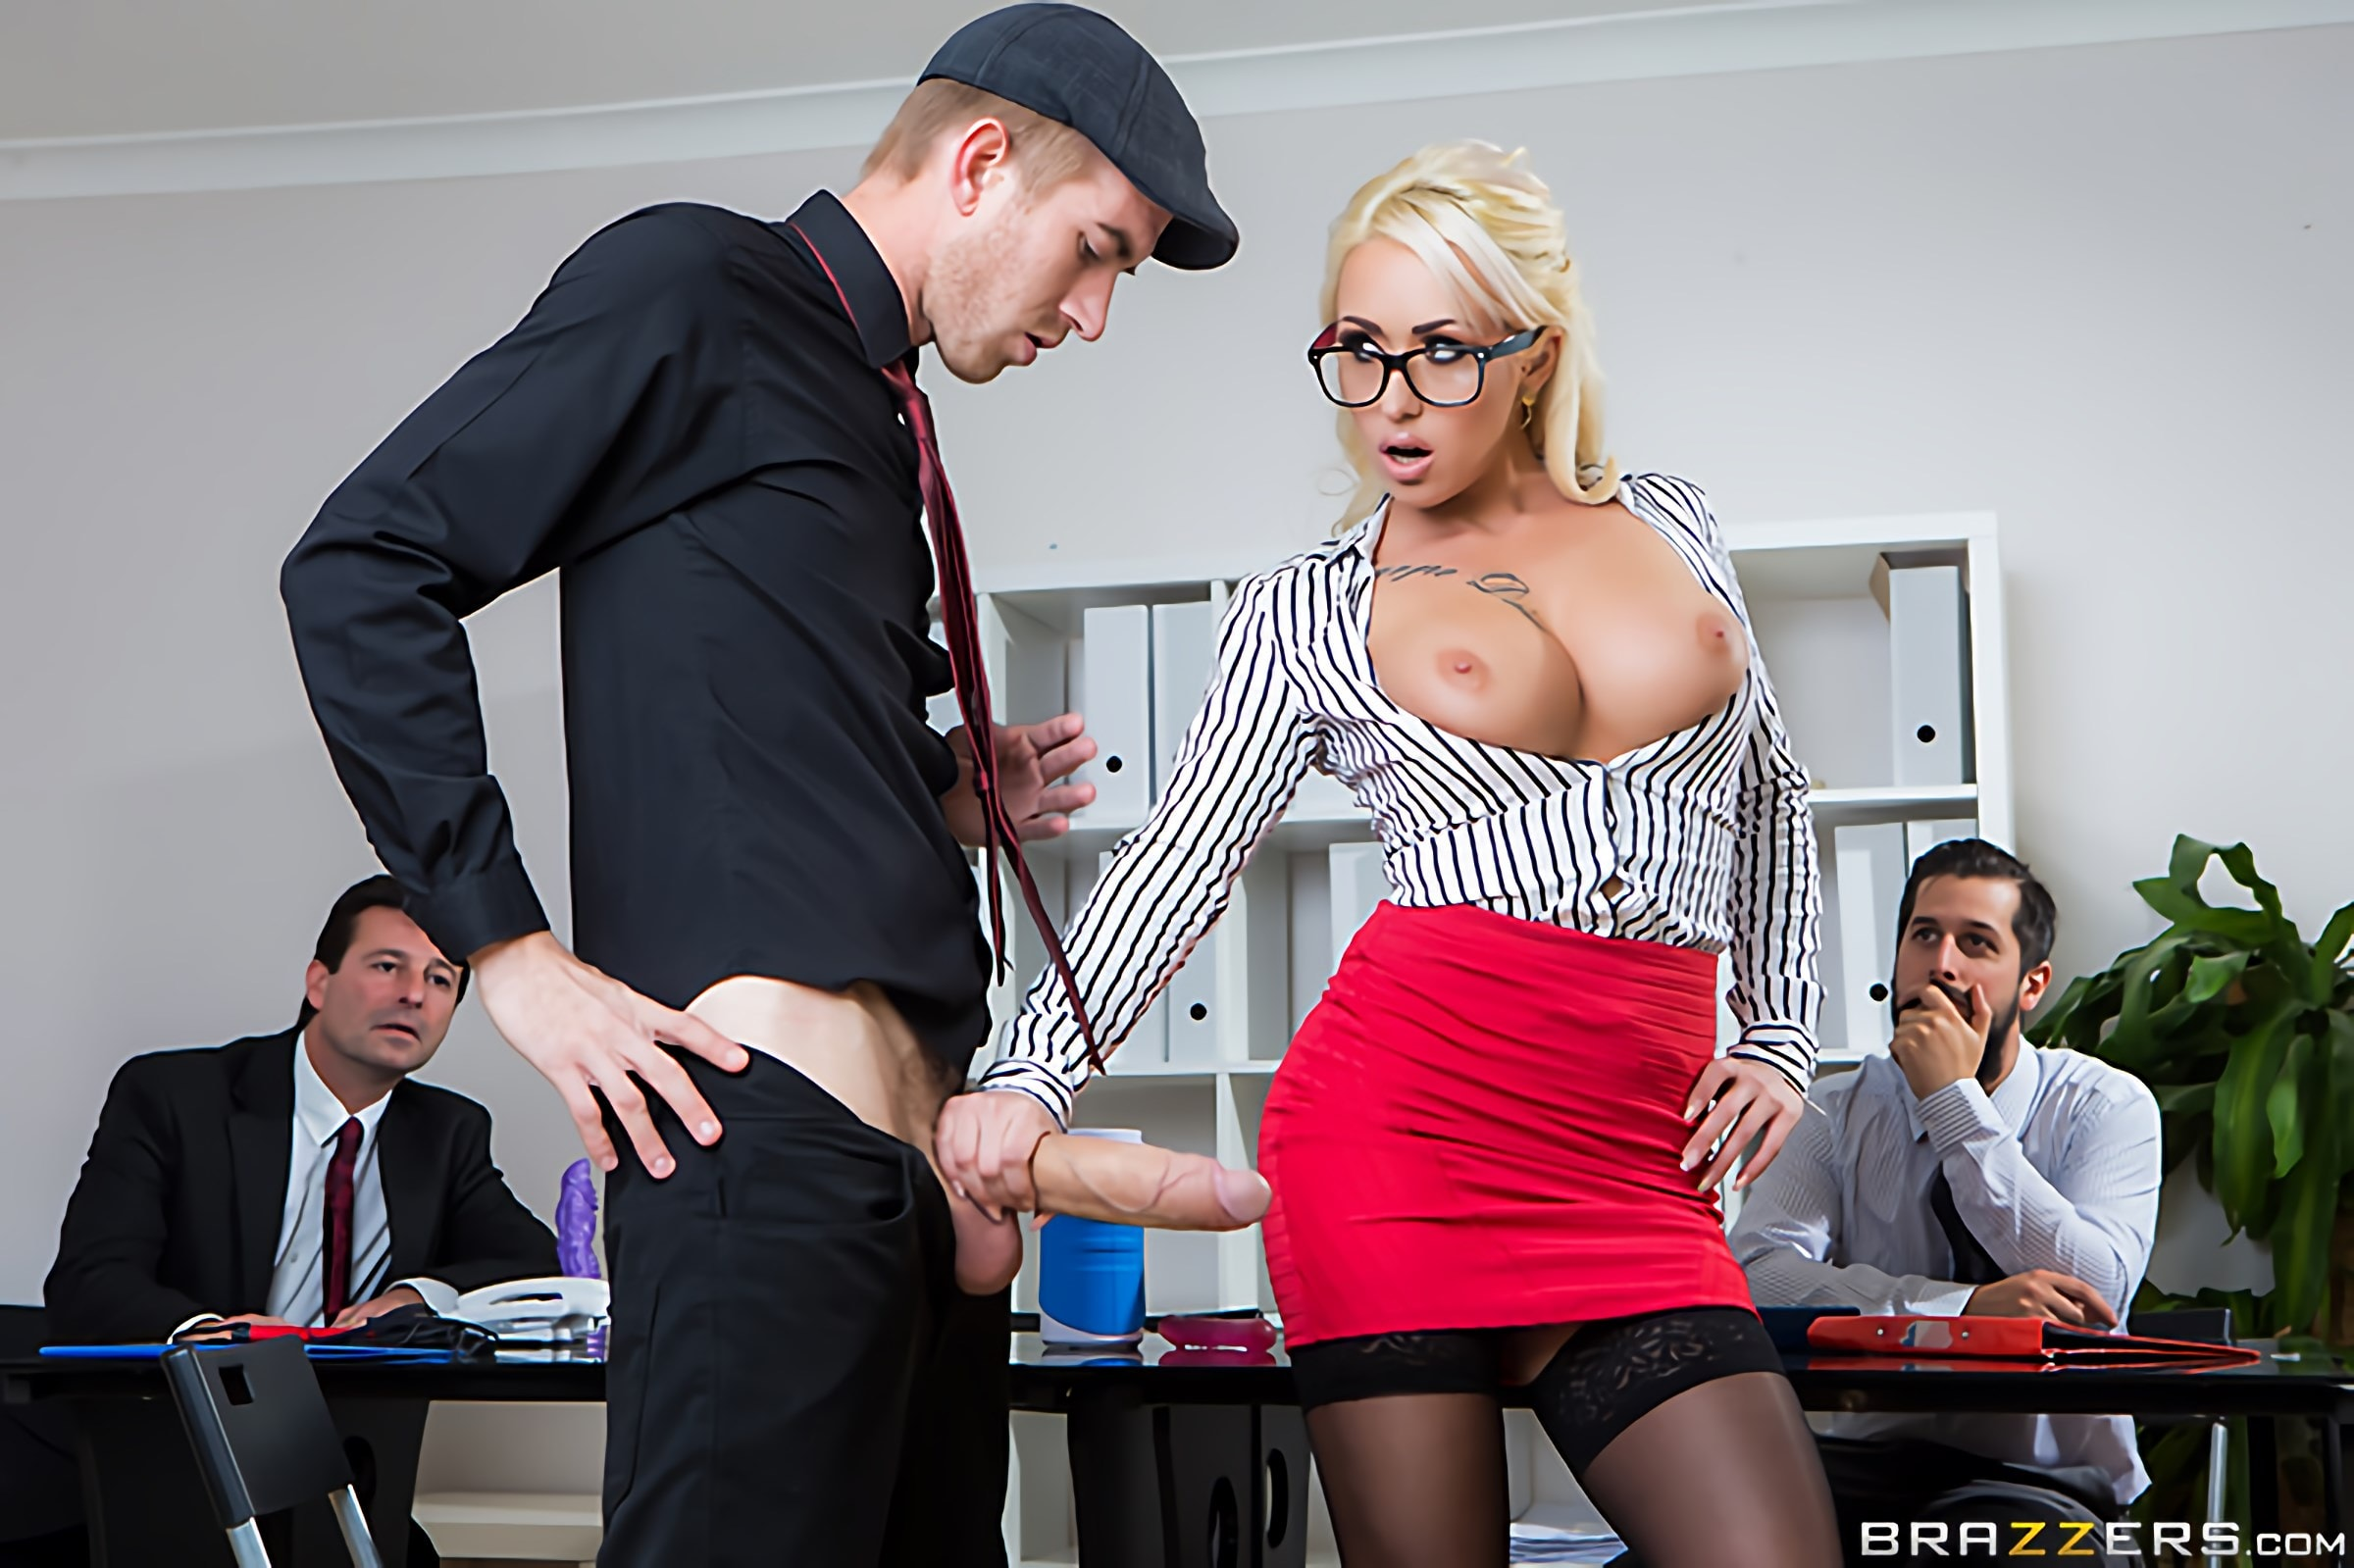 Brazzers 'Sales Pitch' starring Christina Shine (Photo 2)